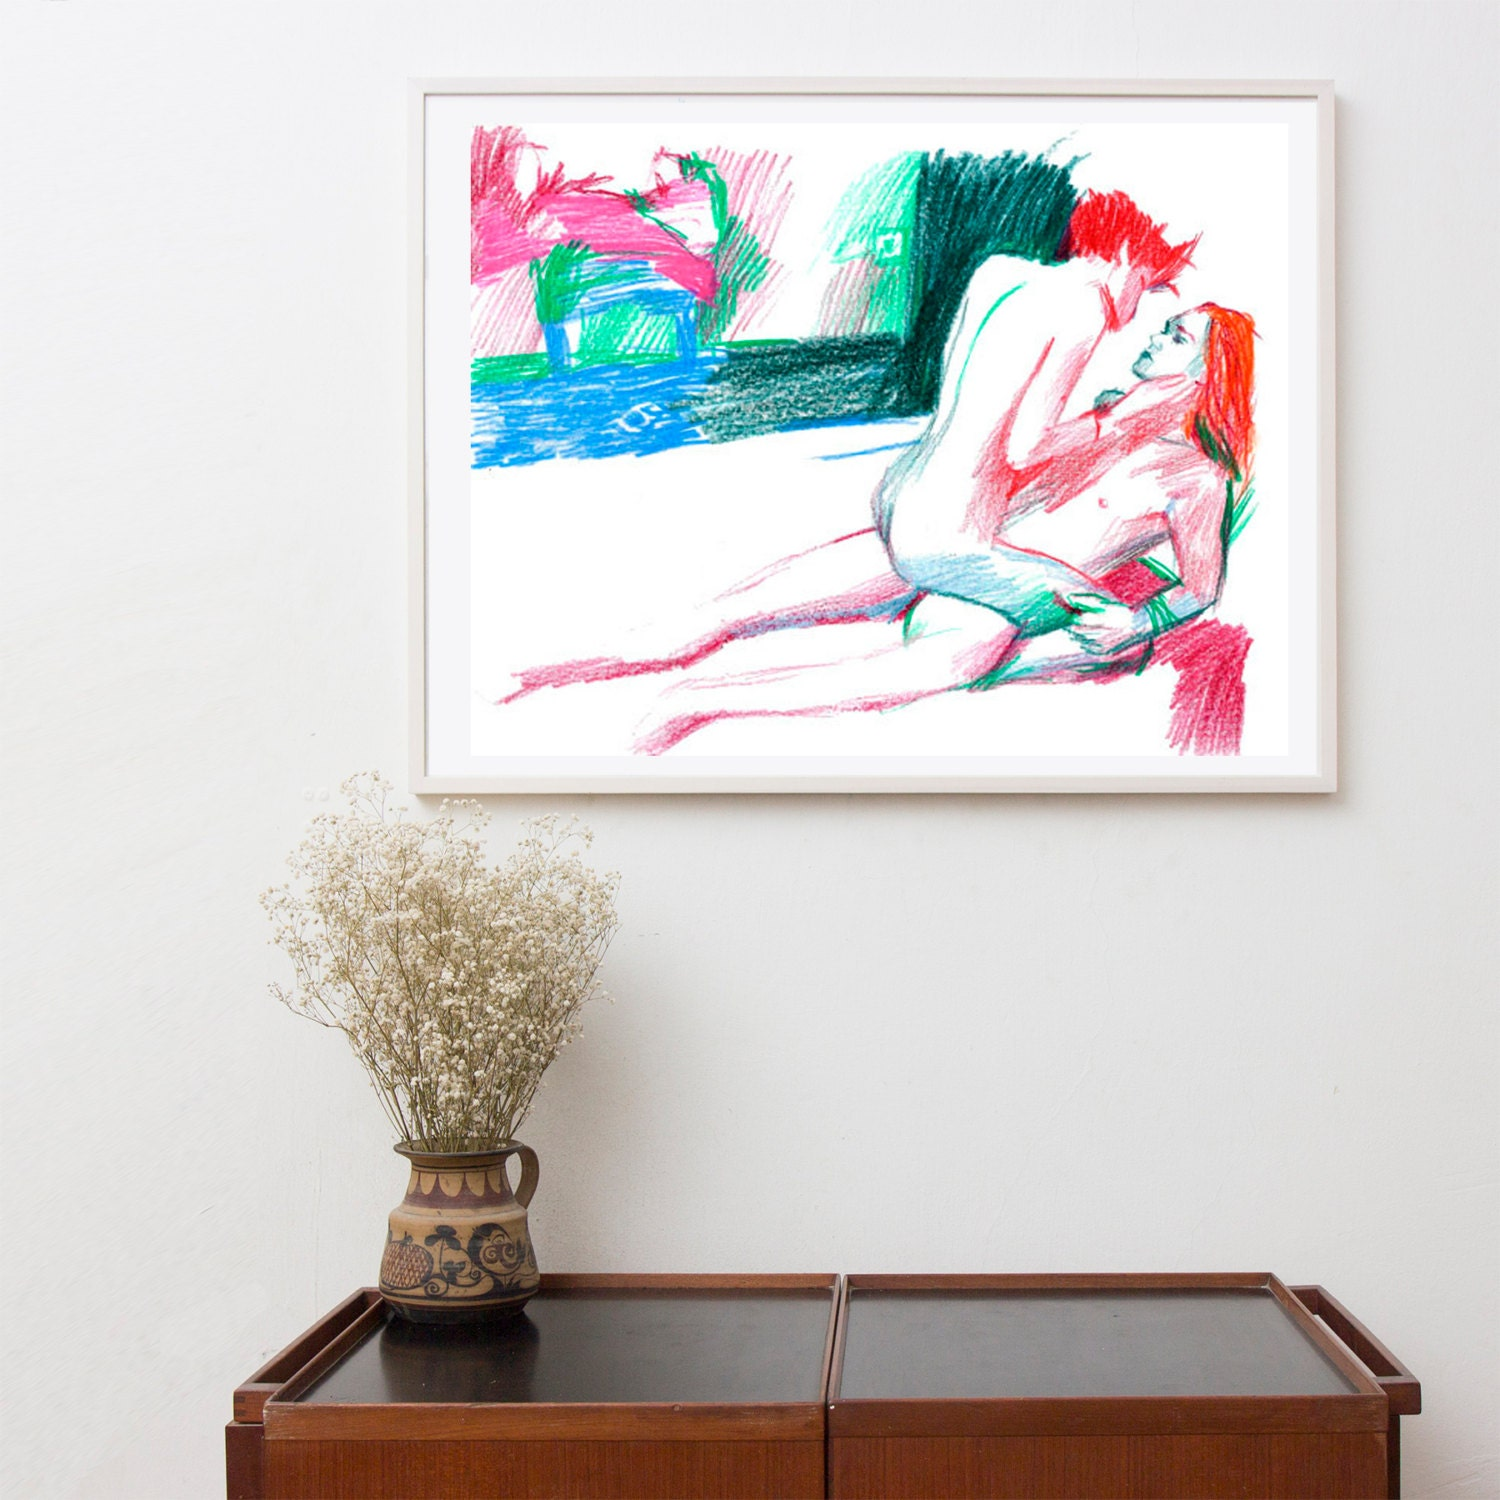 Home Quirks Differences In Decorating By Gender An: Bedroom Decor Gay Art Couple Gay Sex Pop Art Original Art